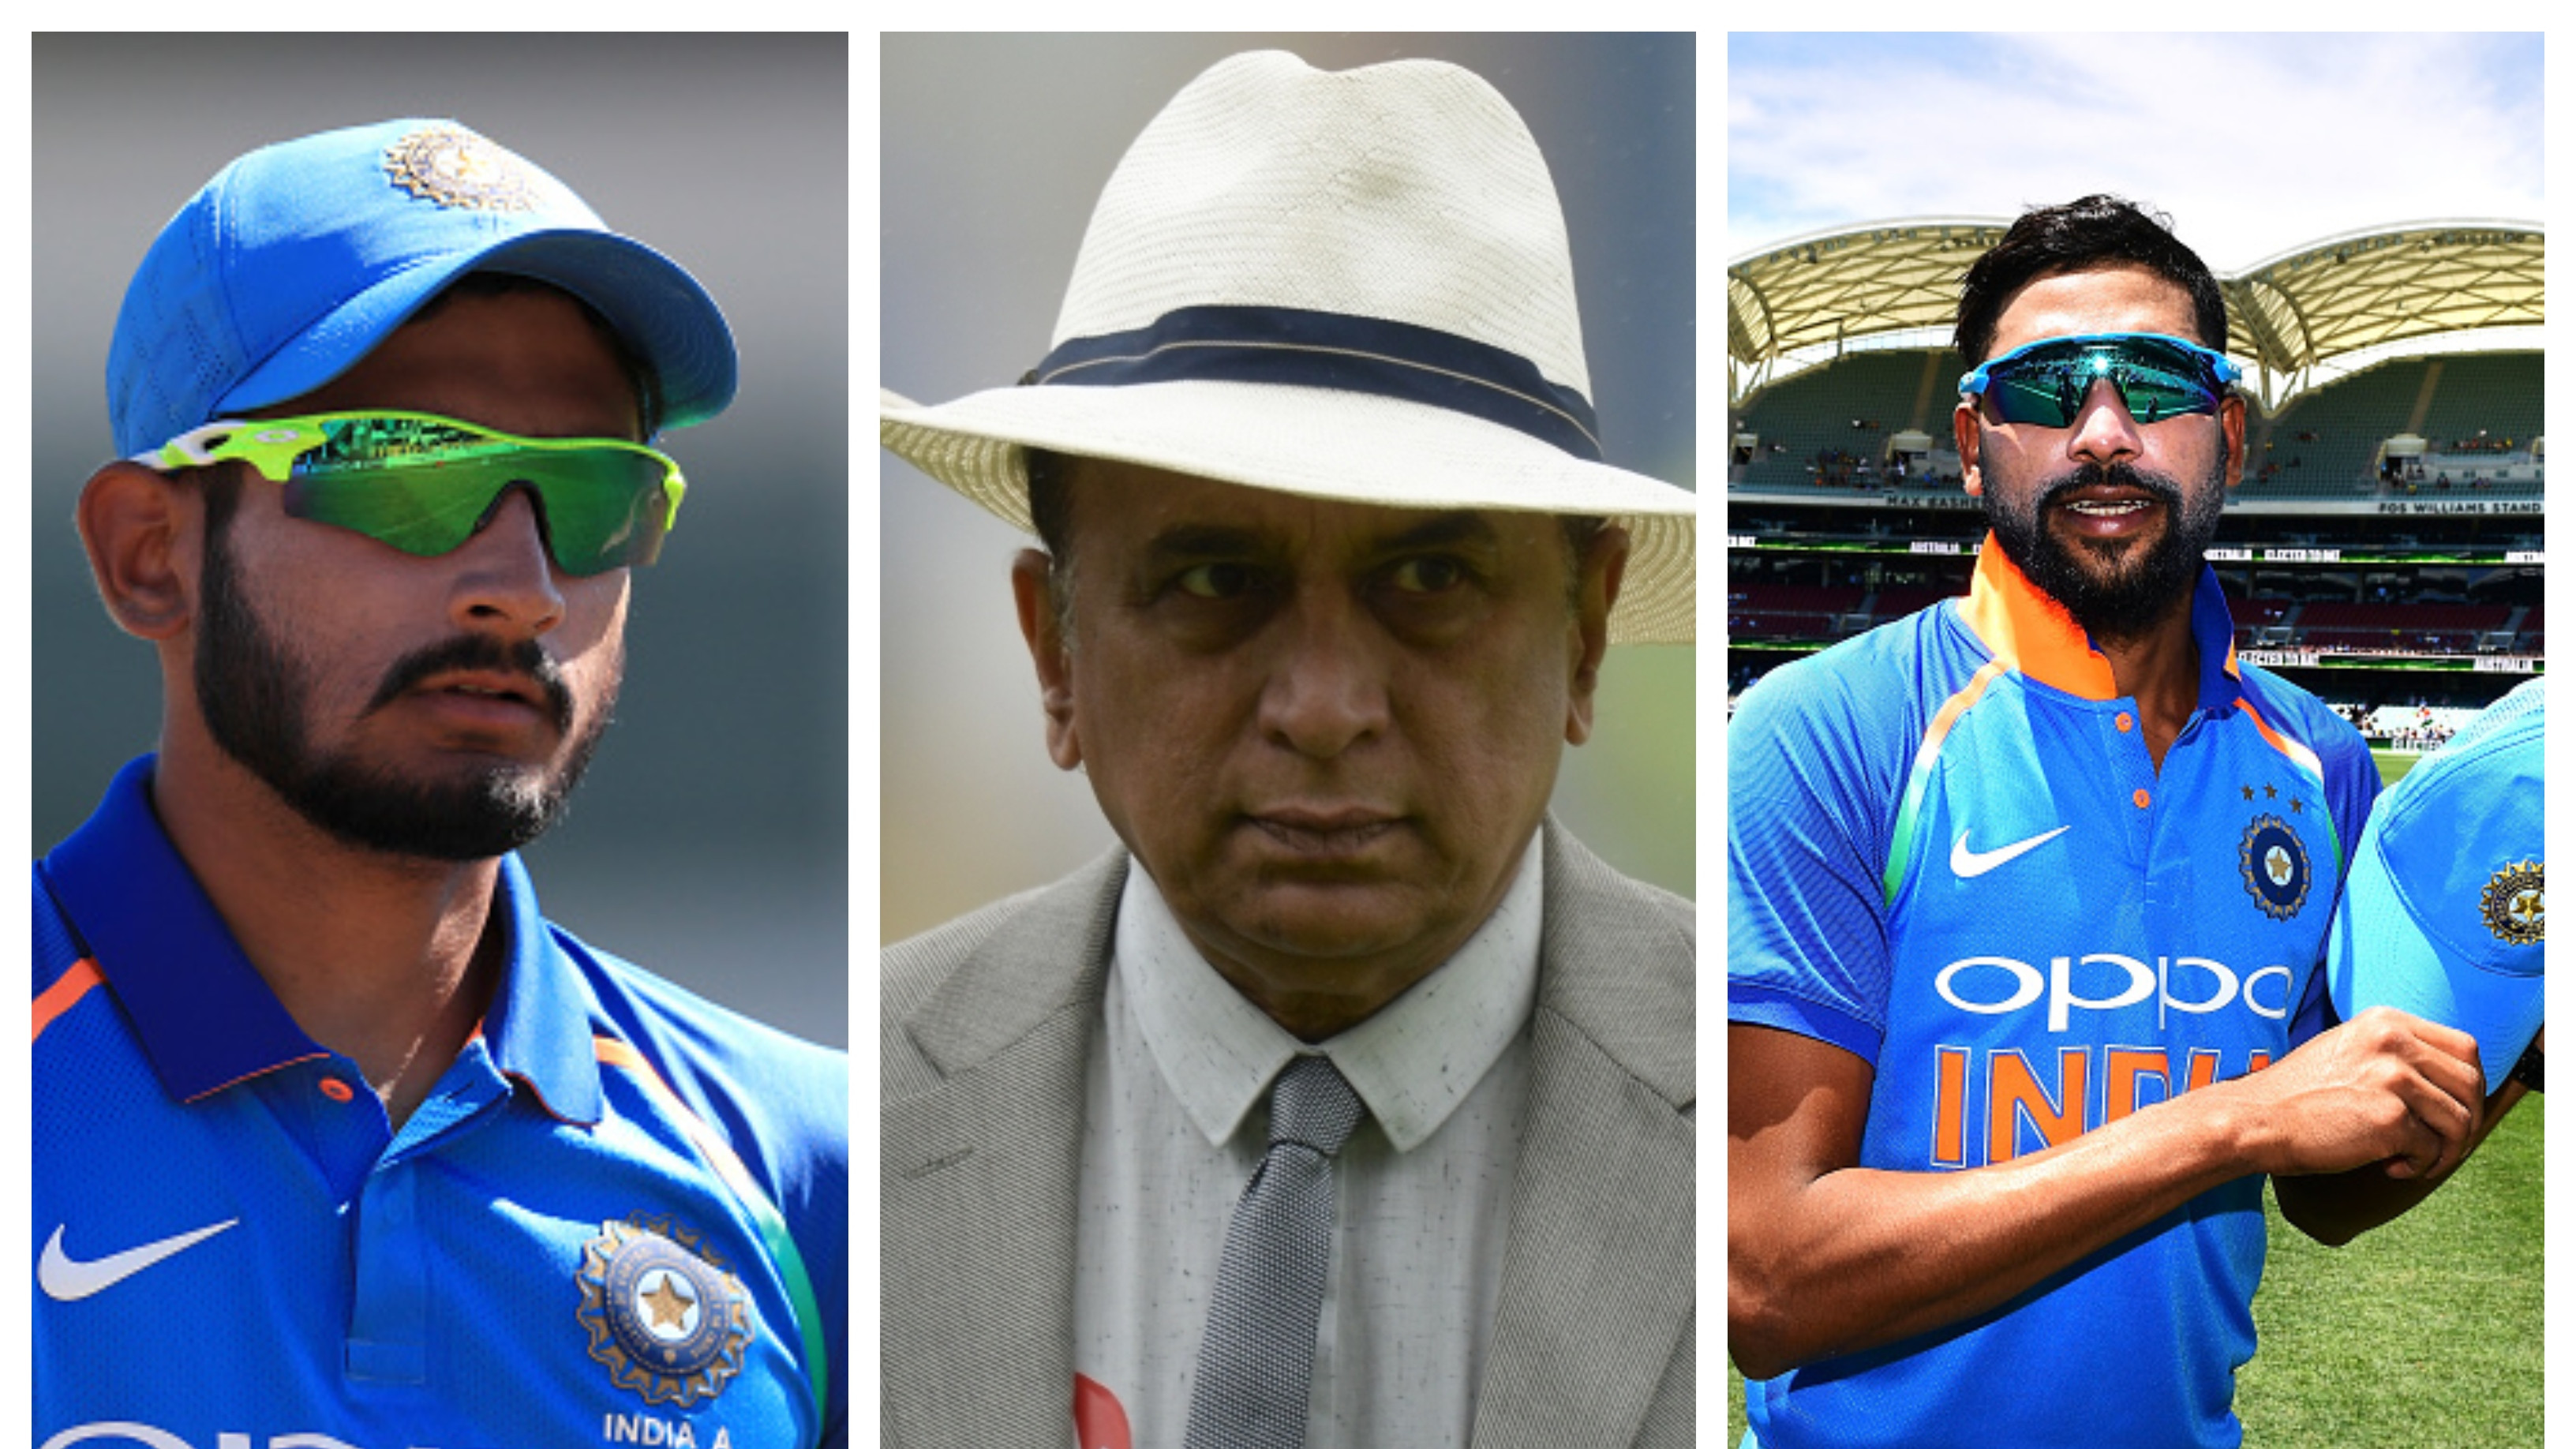 AUS vs IND 2018-19: Third pace bowling option remains a worry for India, says Sunil Gavaskar